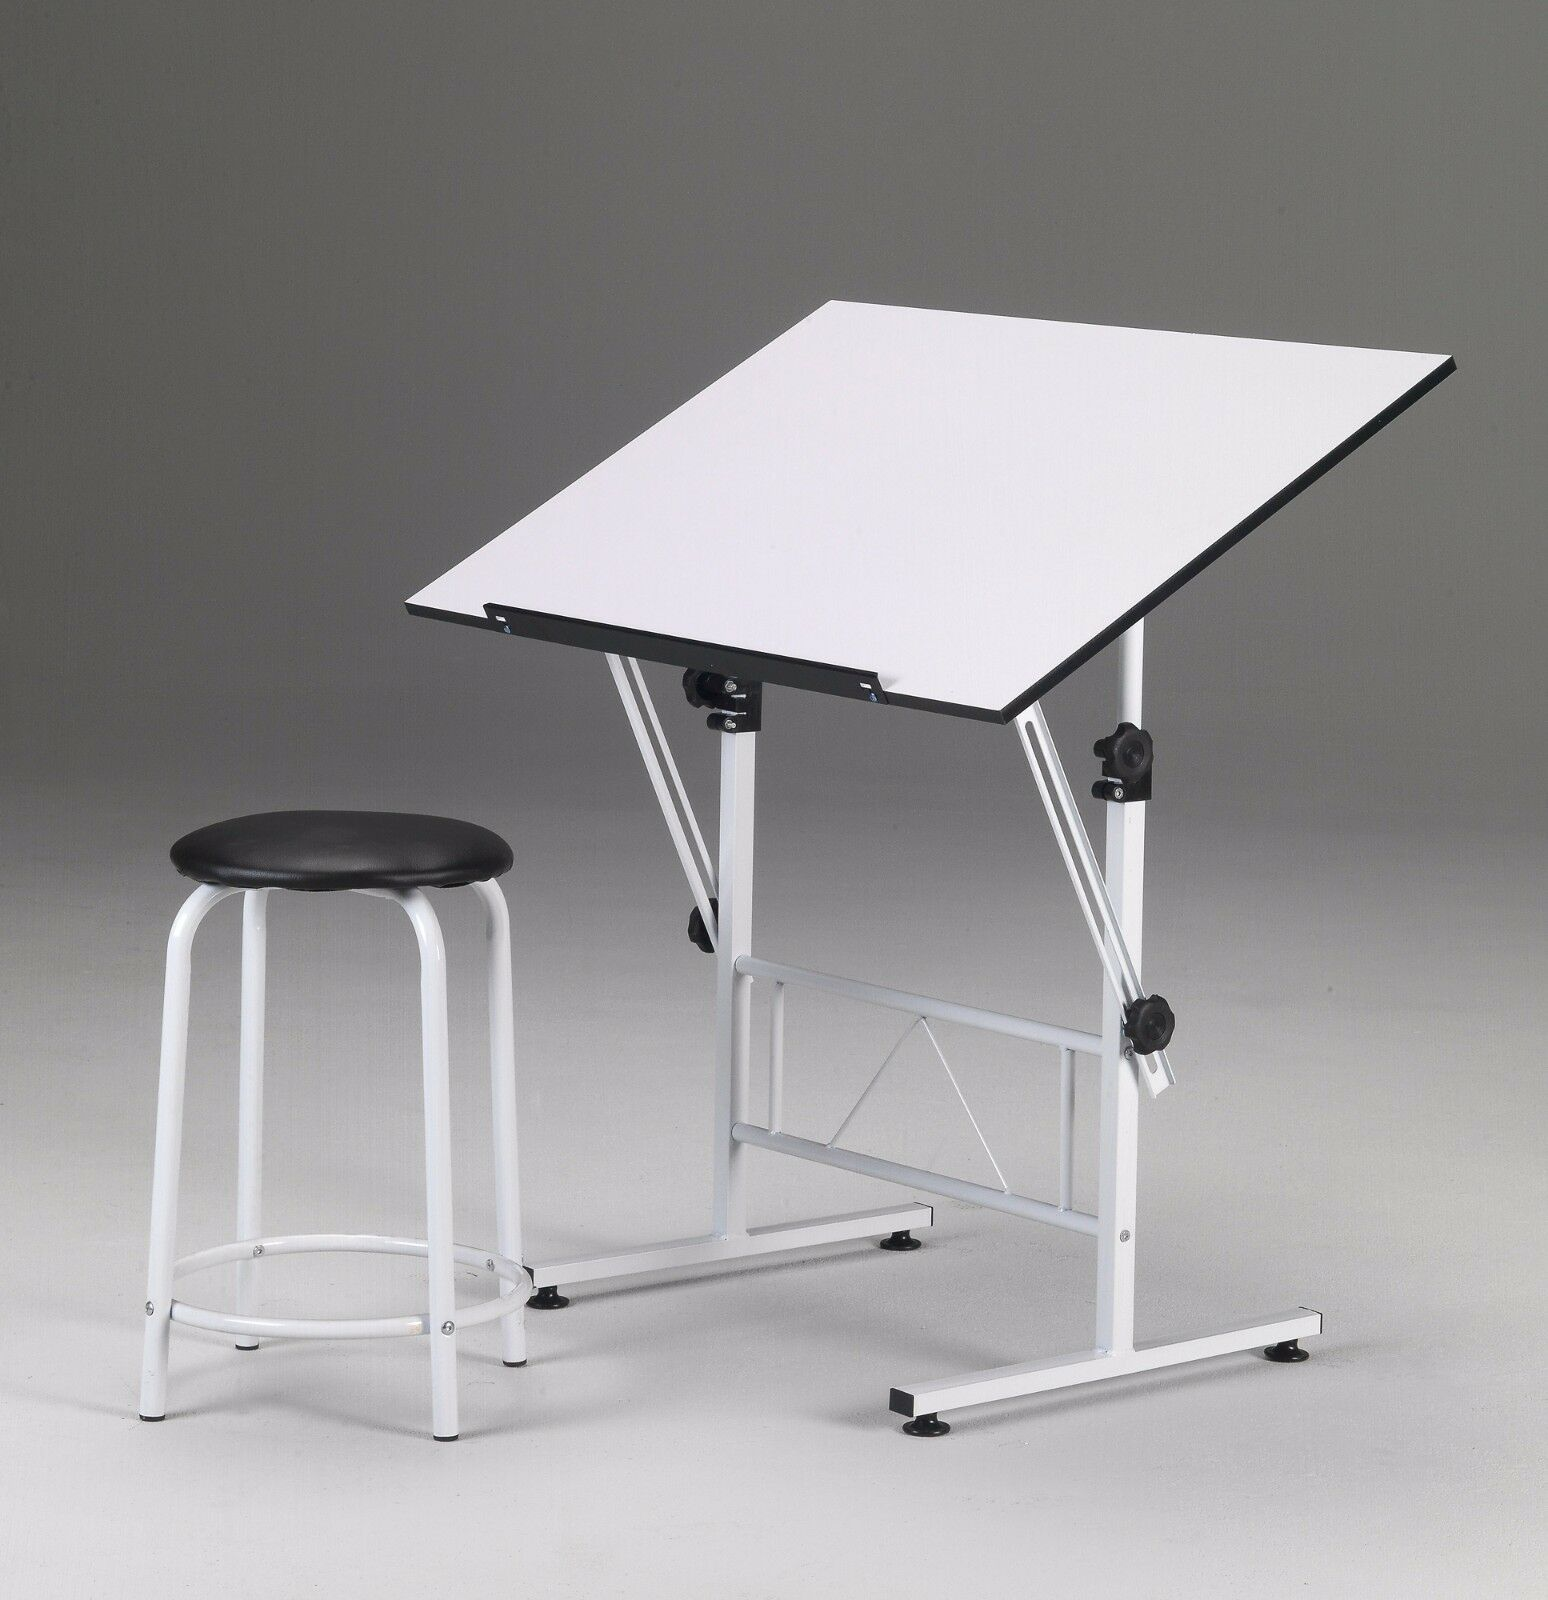 drafting table chair height vitra office drawing hobby art craft desk